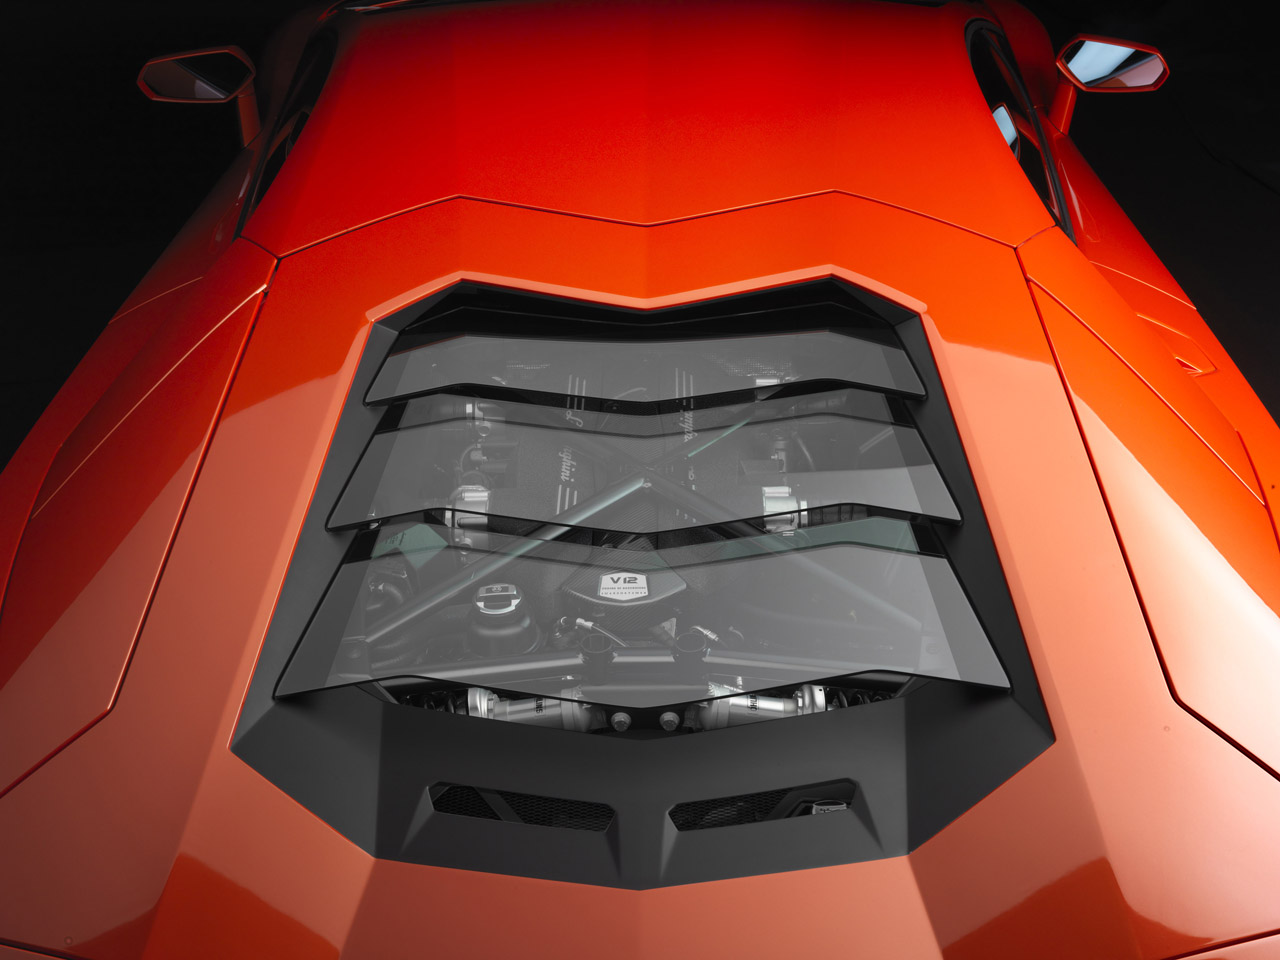 Lamborghini Aventador Lp 700 4 A New Reference Among Super Sports Cars 2004 Fiat Elettra Mcs Engine Fuse Box Diagram Innovative Concept And Phenomenal Performance Redefine The Pinnacle Of Car Segment